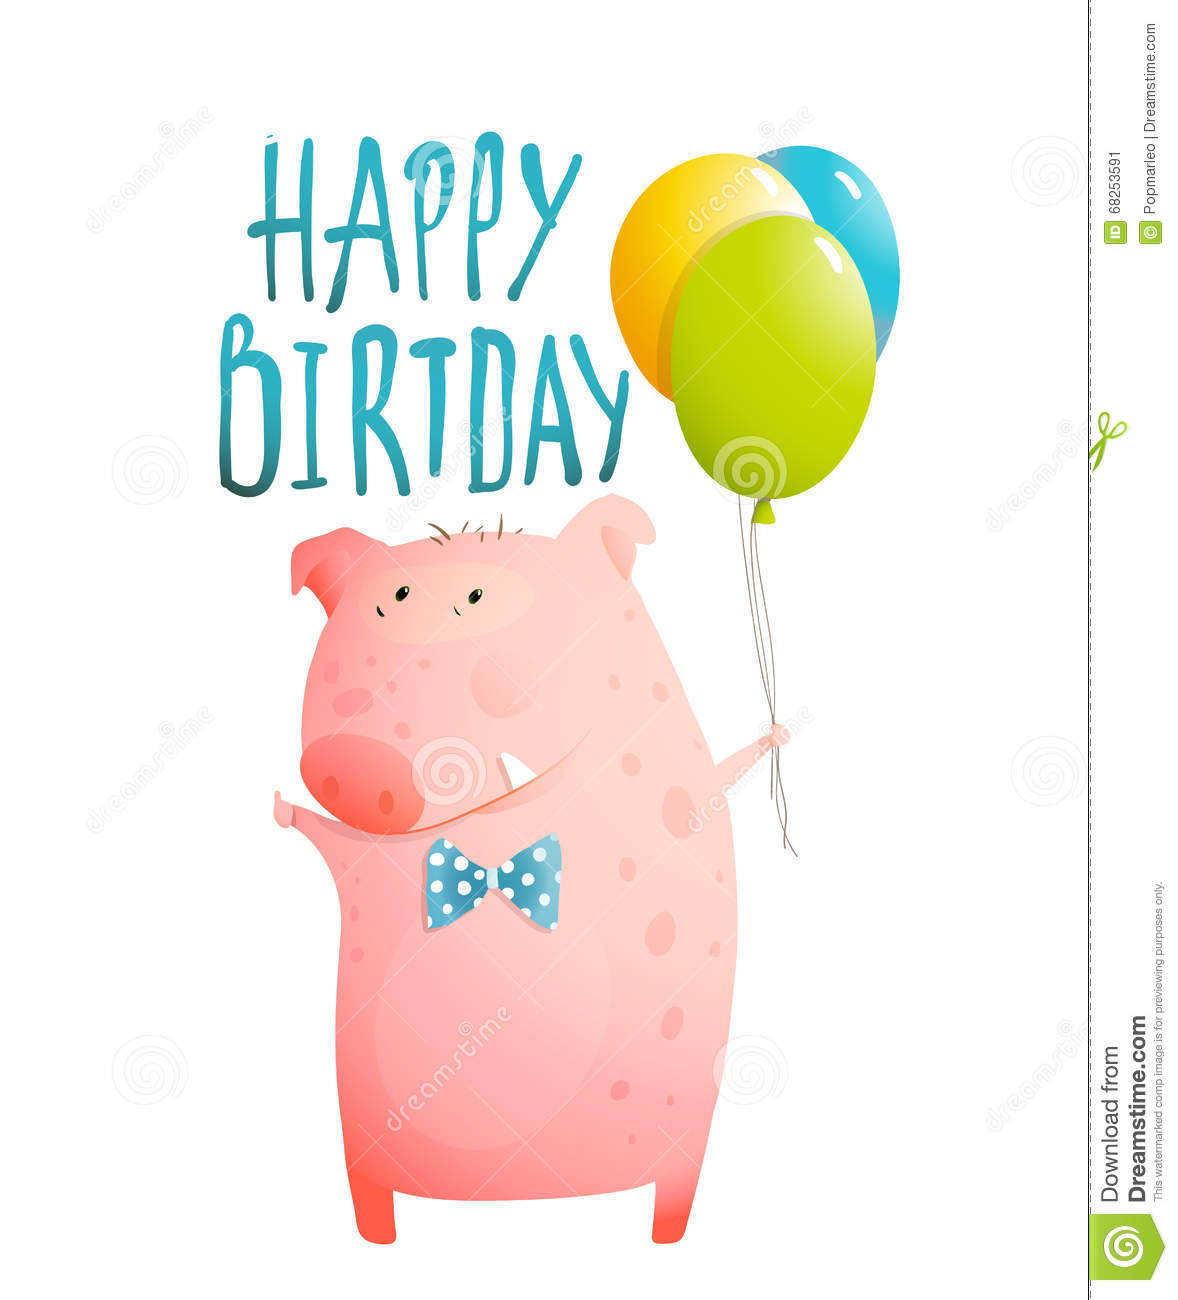 Pig Greeting Happy Birthday Card For Children Stock Vector Image 68253591